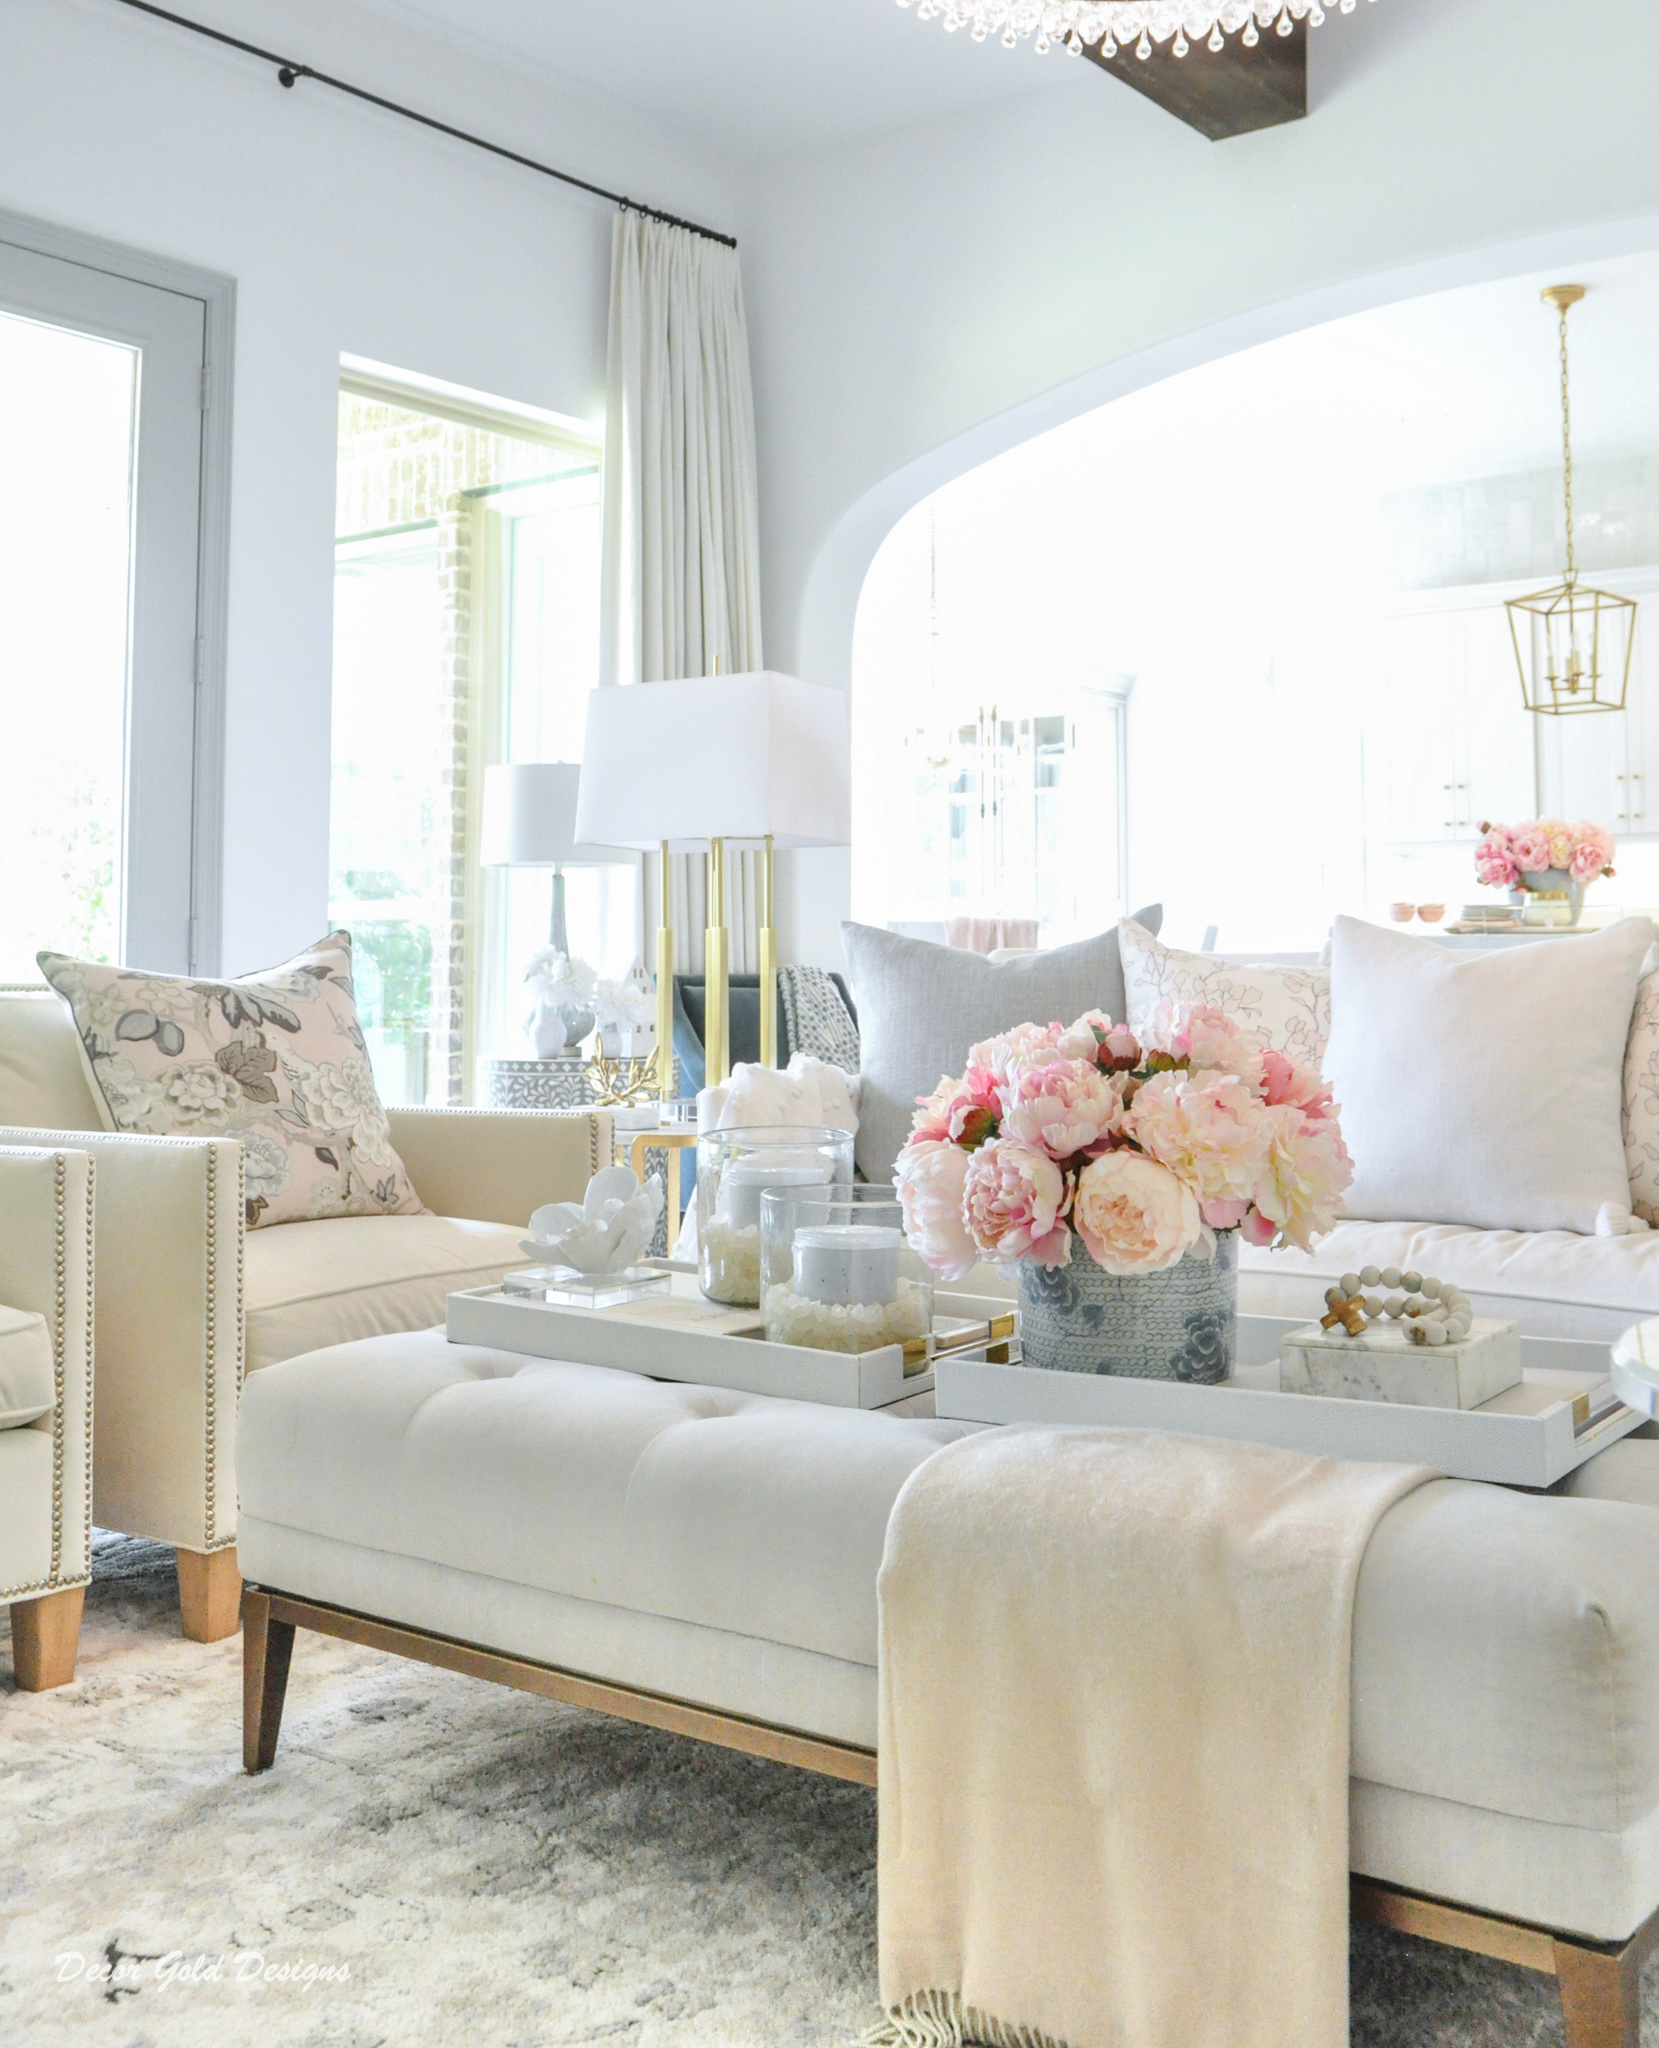 Spring home tour living room beautiful decorative accessories